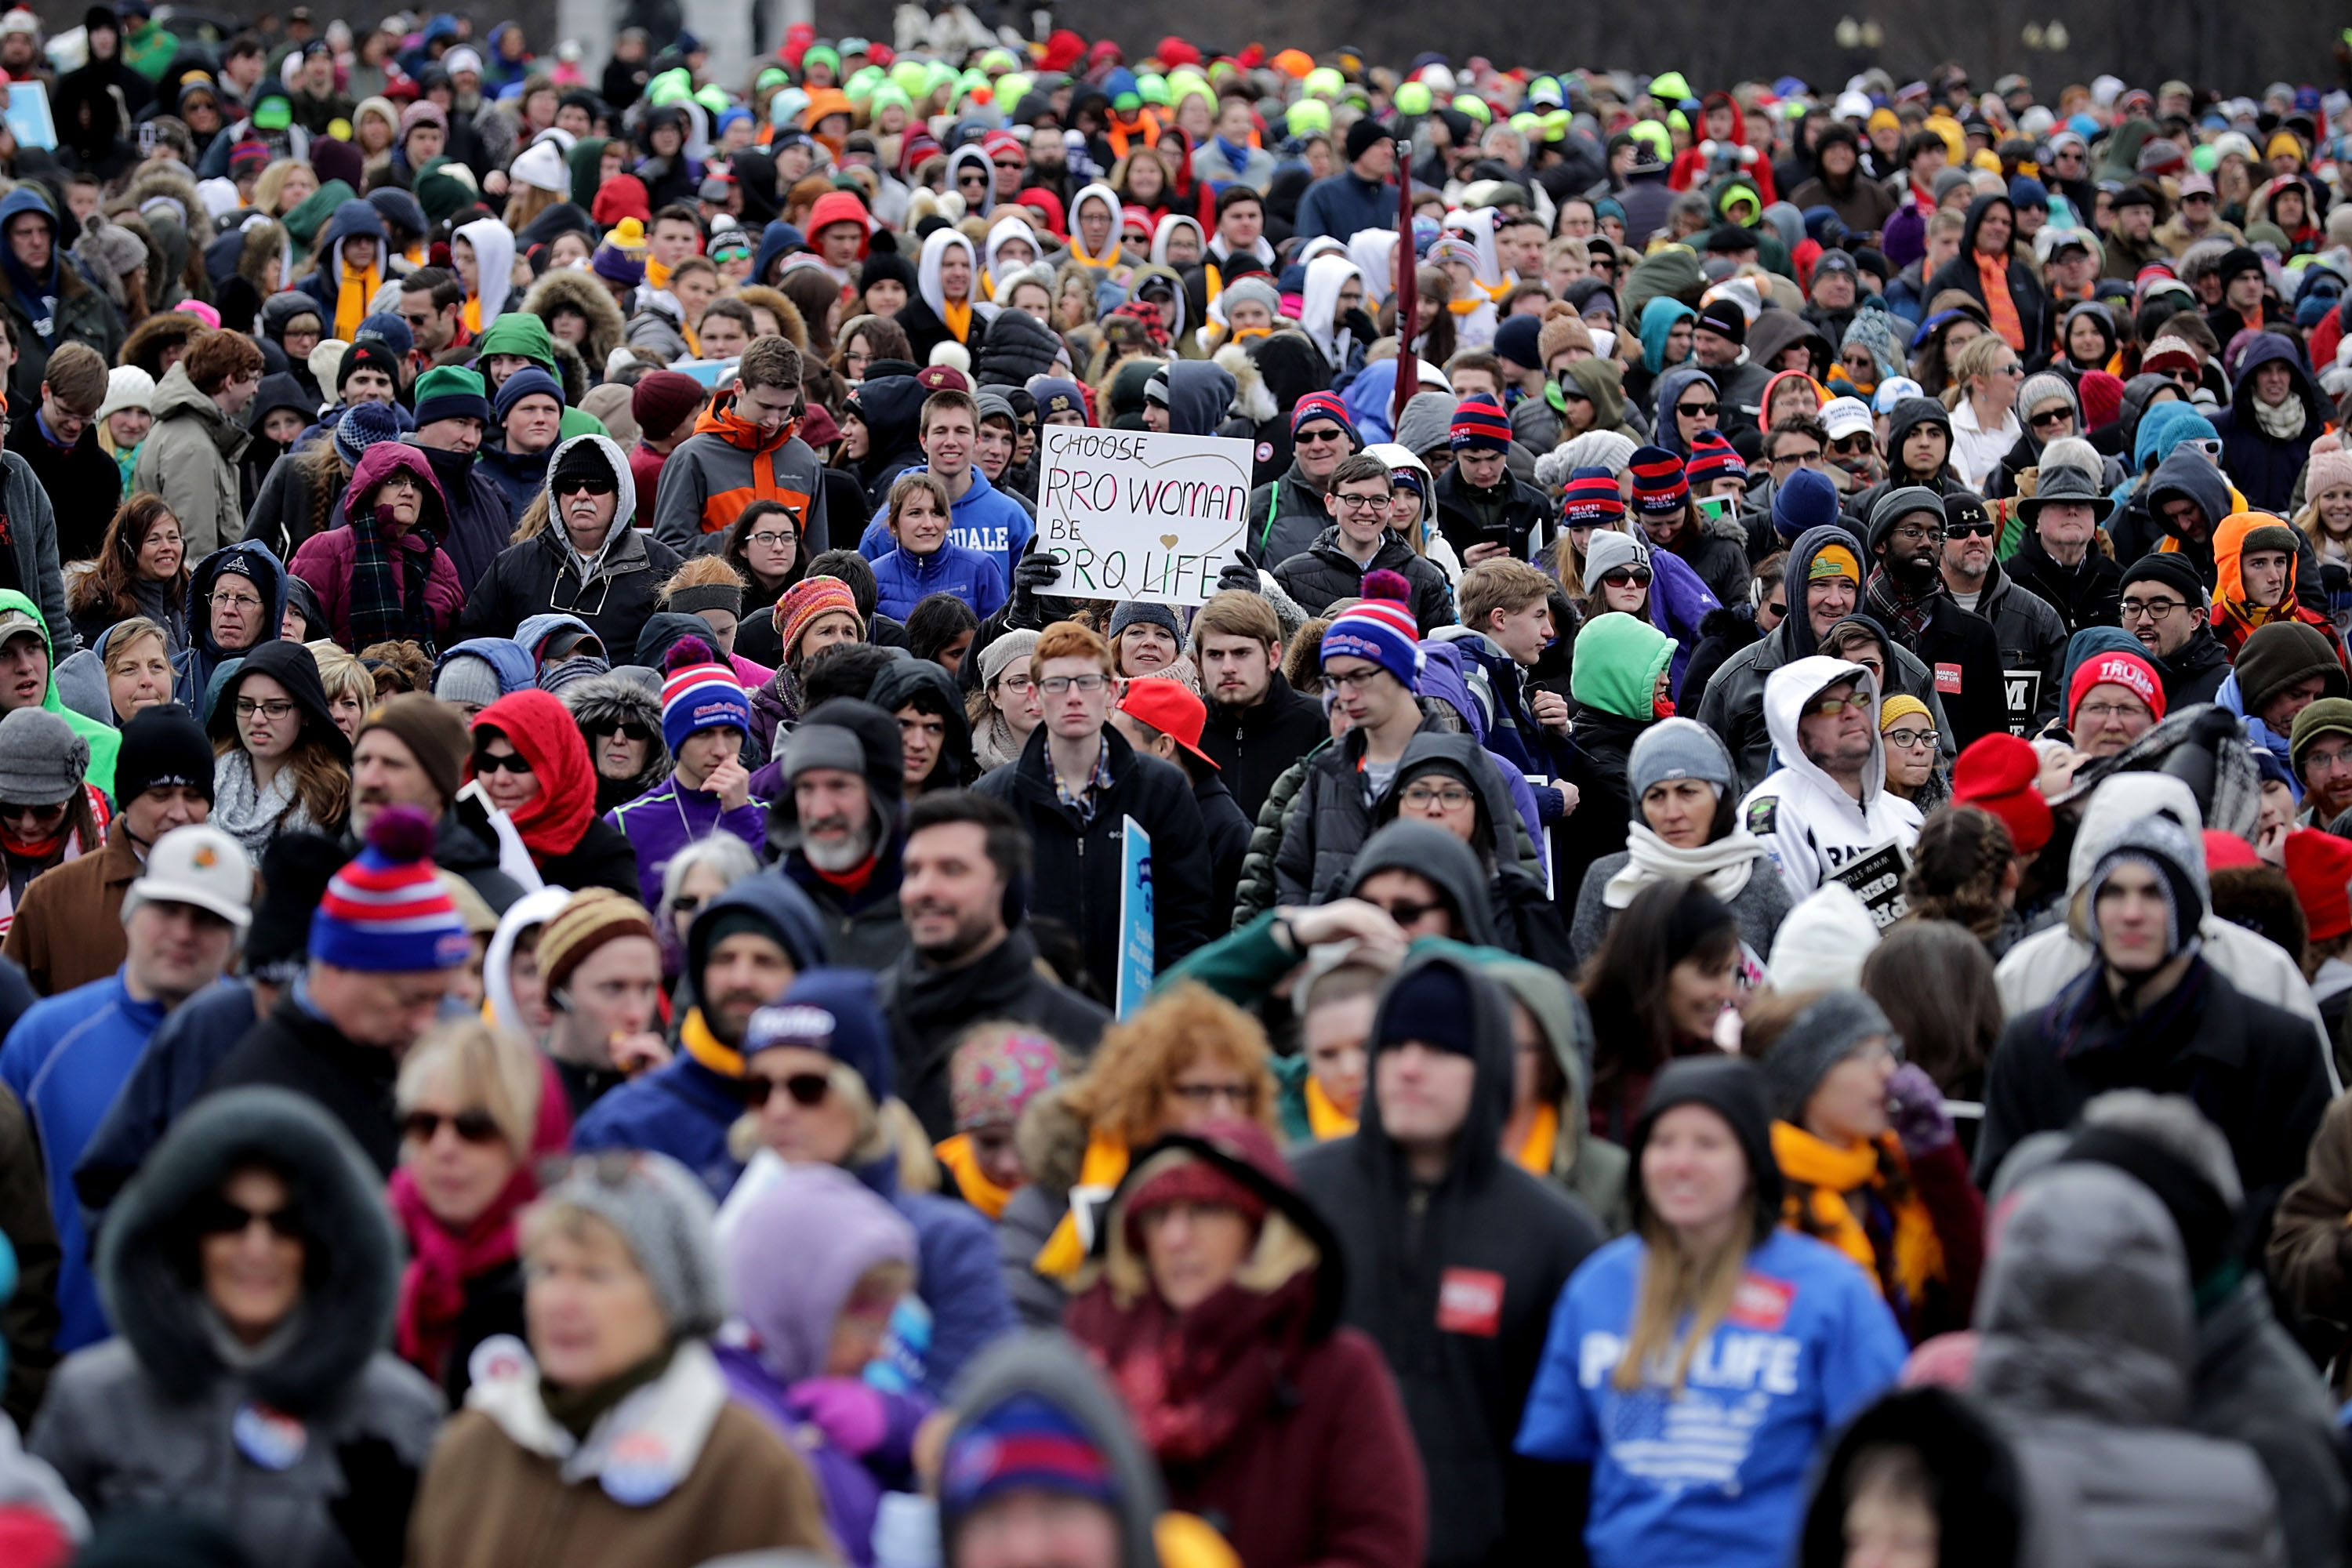 Thousands of people rally on the National Mall before the start of the 44th annual March for Life January 27, 2017 in Washington, DC. (Photo by Chip Somodevilla/Getty Images)